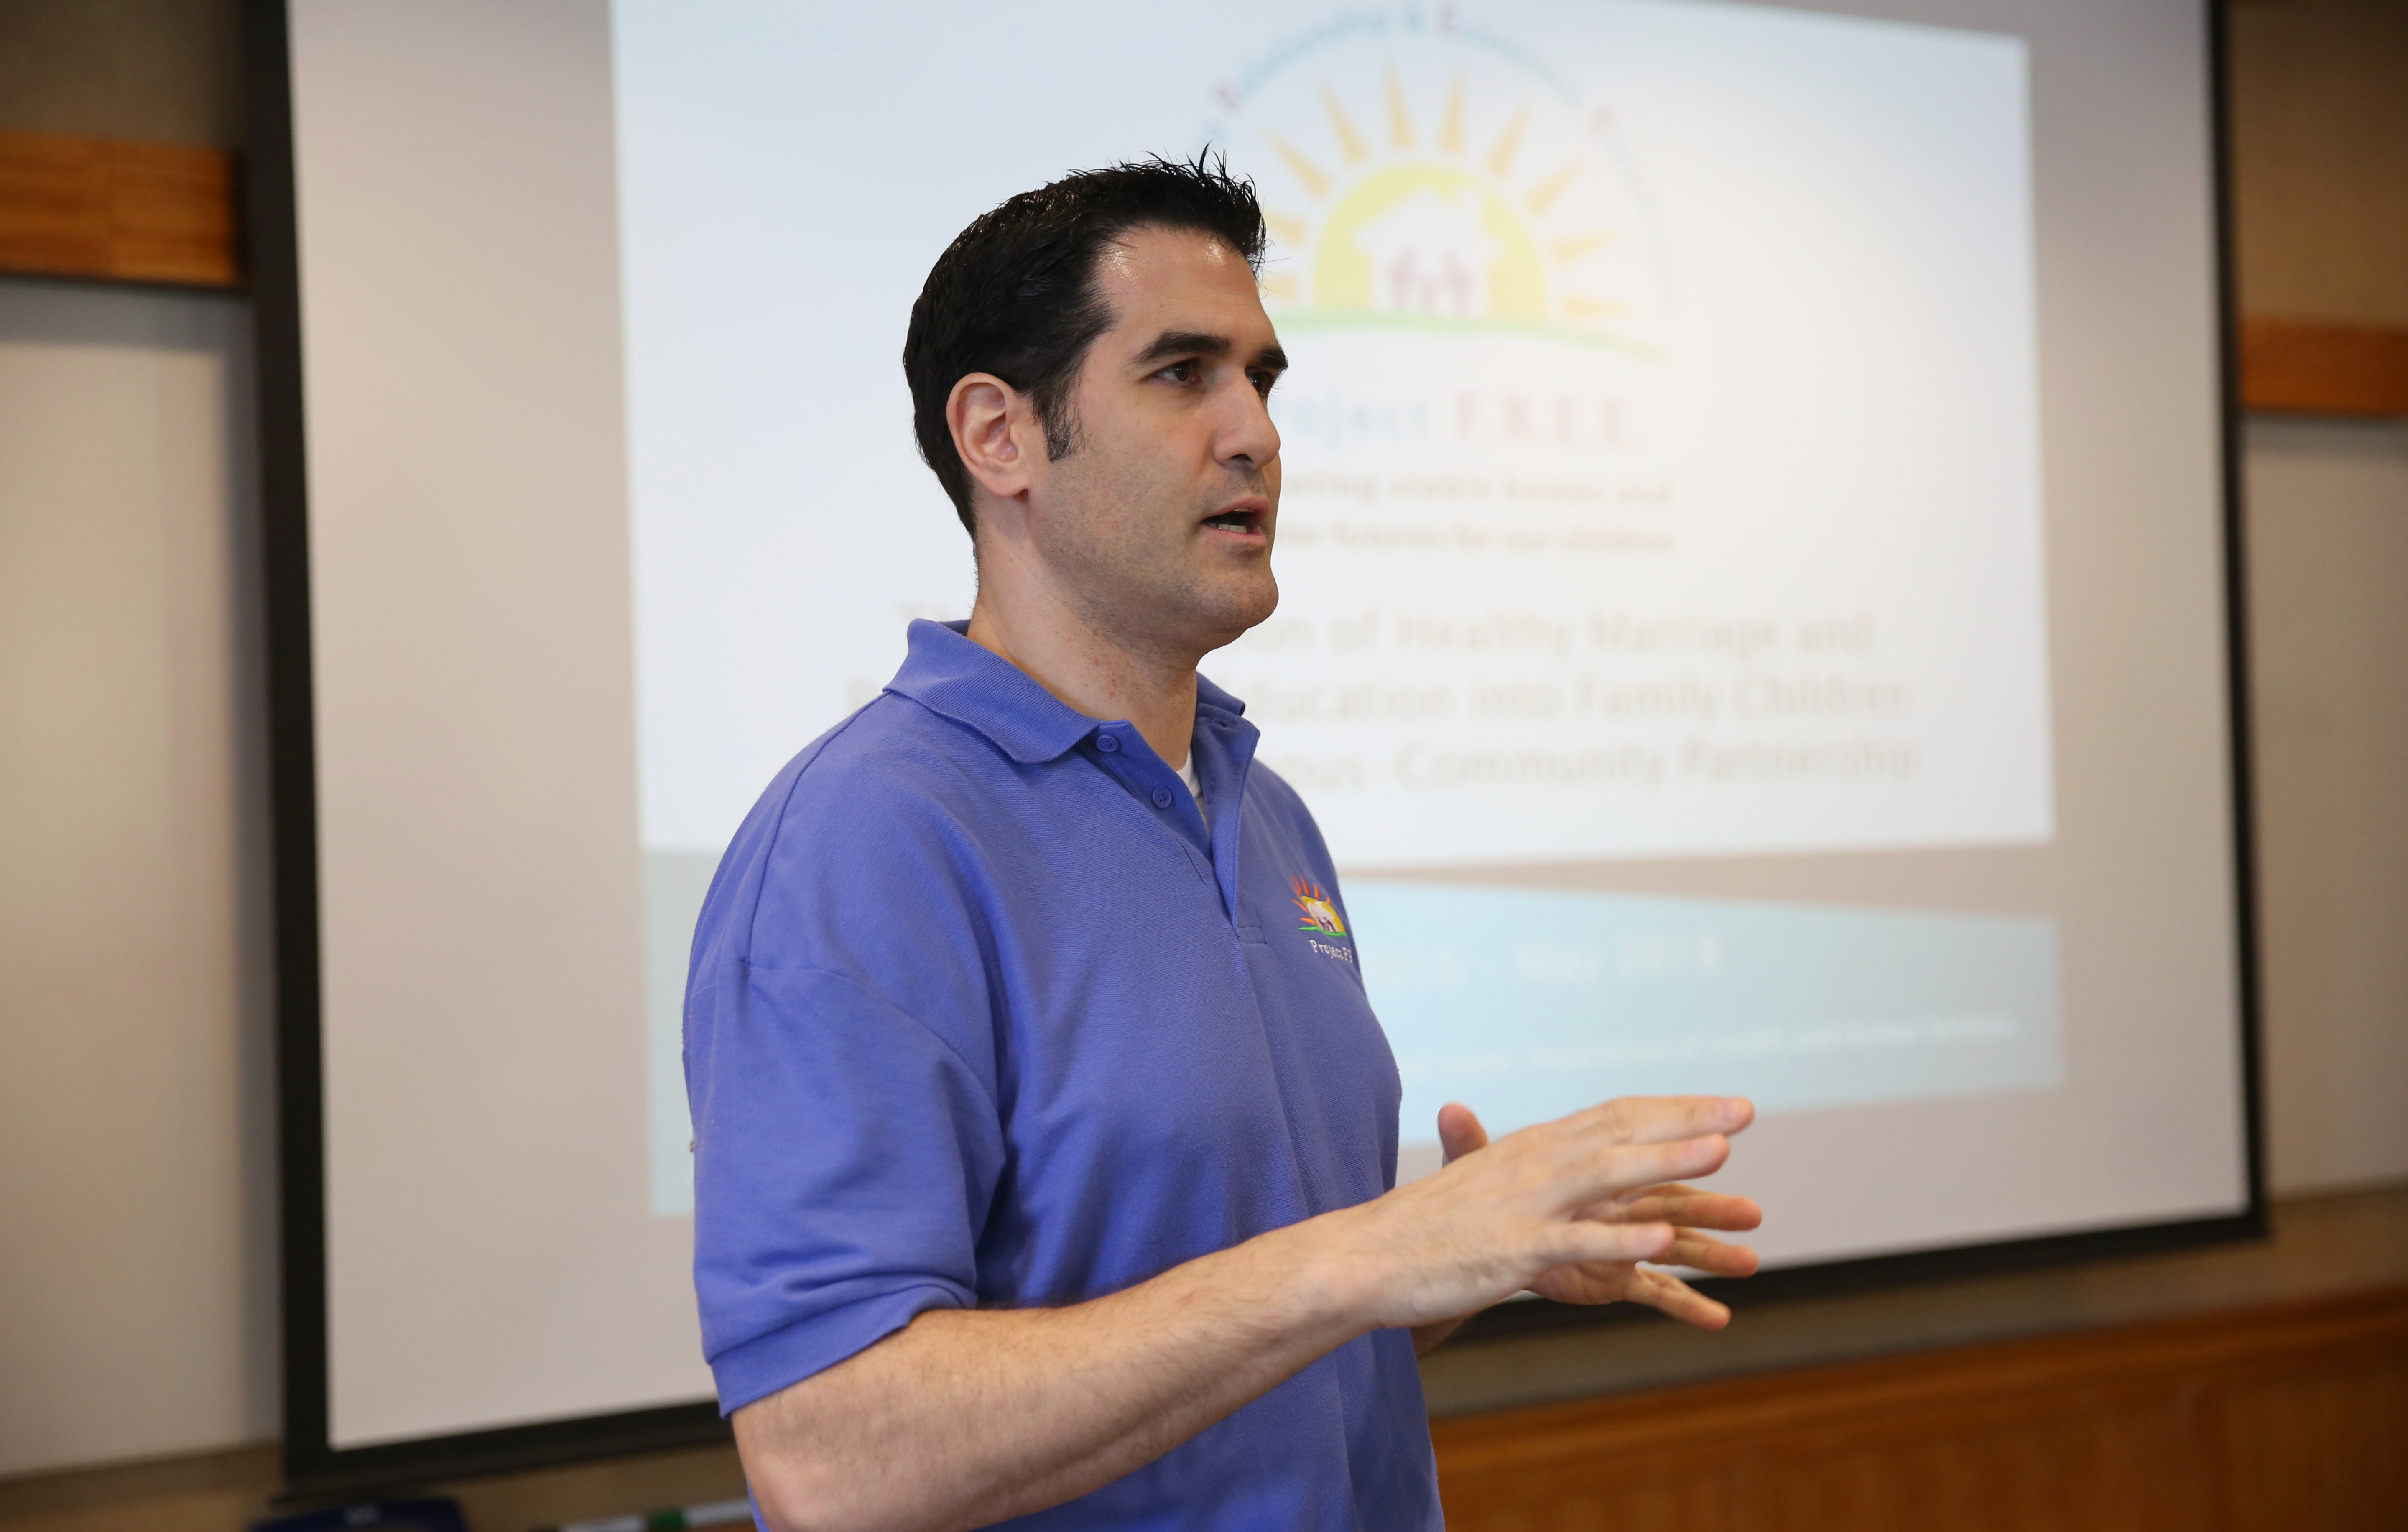 Ted Futris is project director on a recently awarded five-year, $6.2 million grant from the U.S. Department of Health and Human Services that aims to provide Georgia couples with healthy relationship skills and financial guidance.